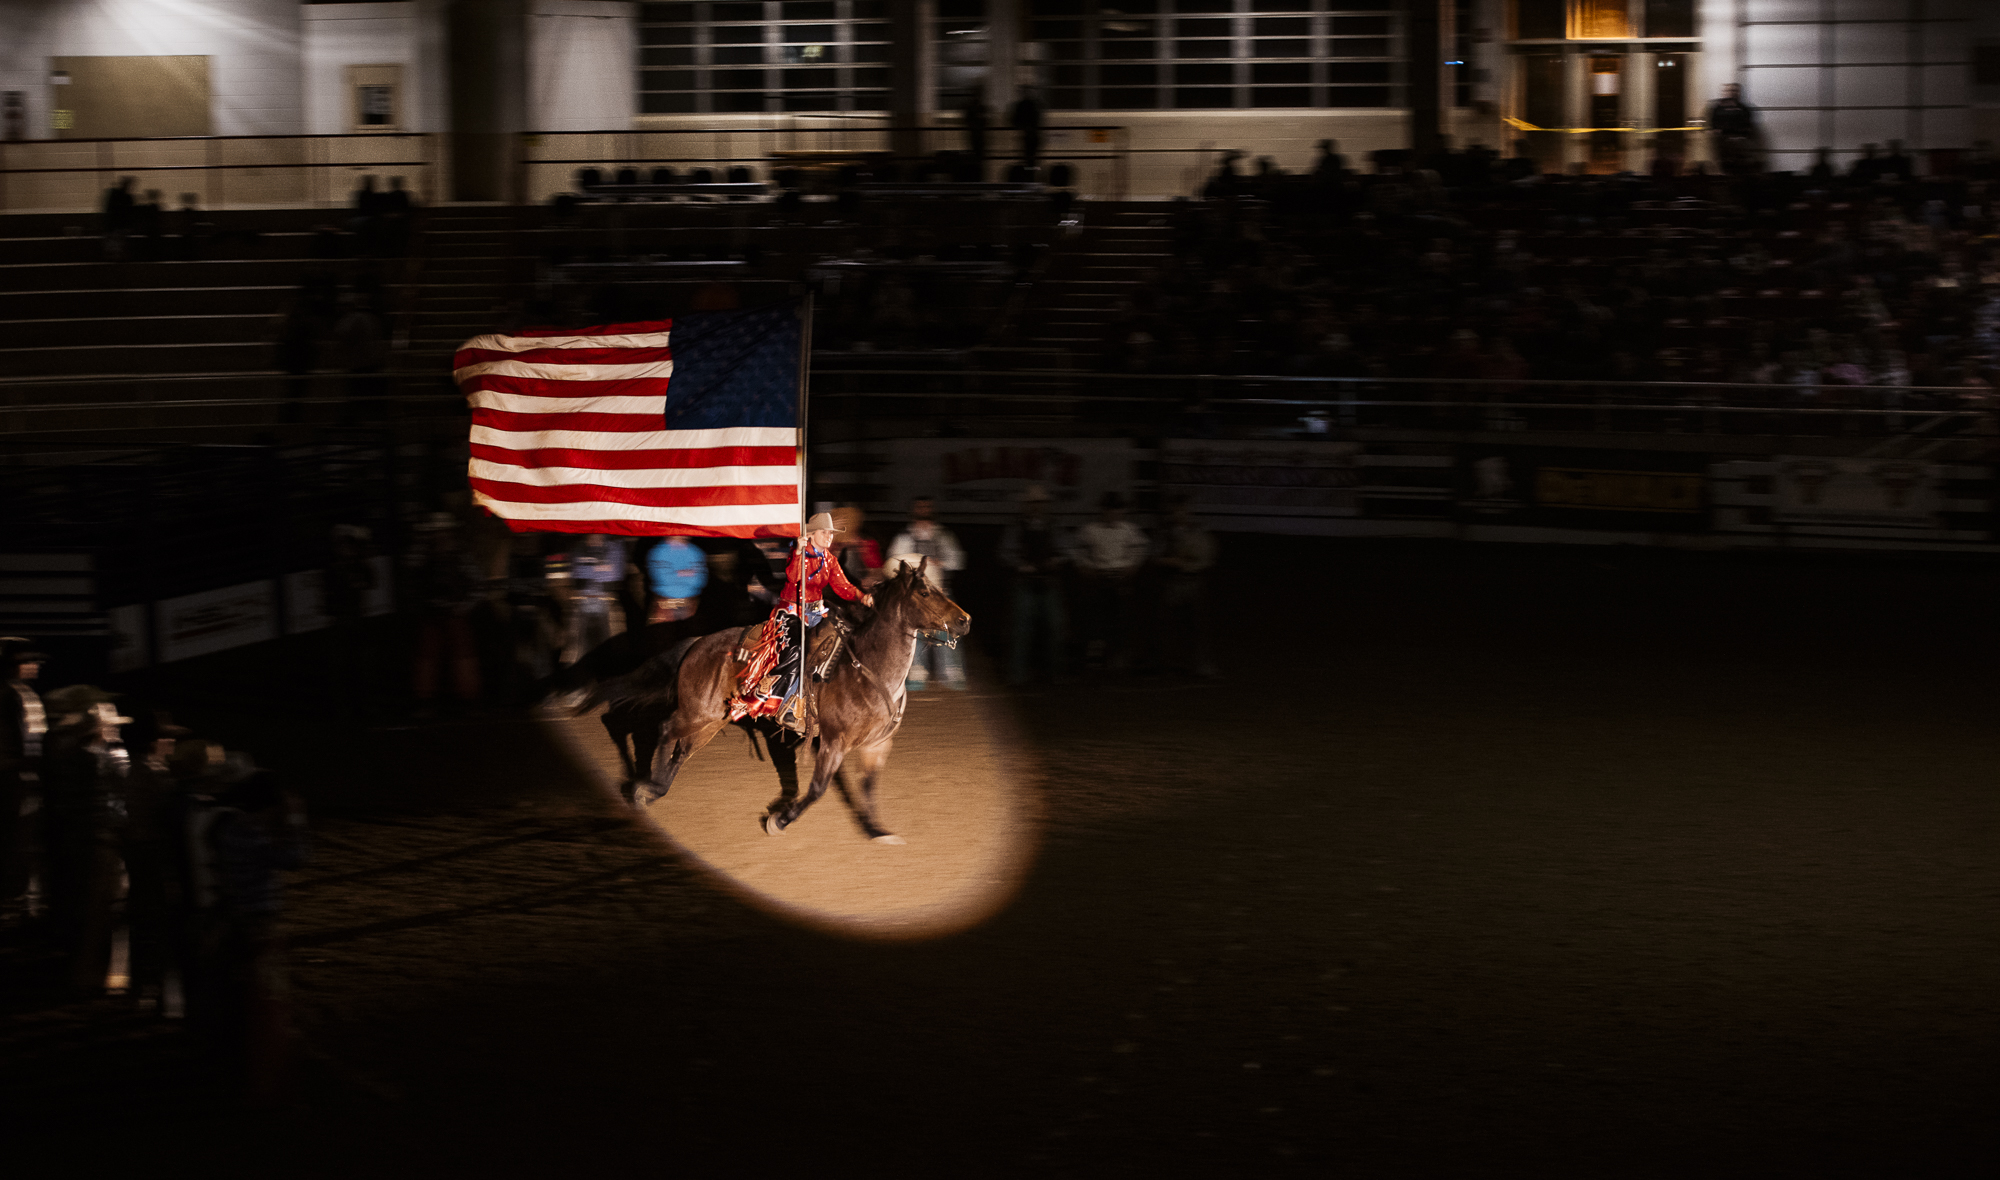 American Flag at bull riding rodeo event in Asheville North Carolina